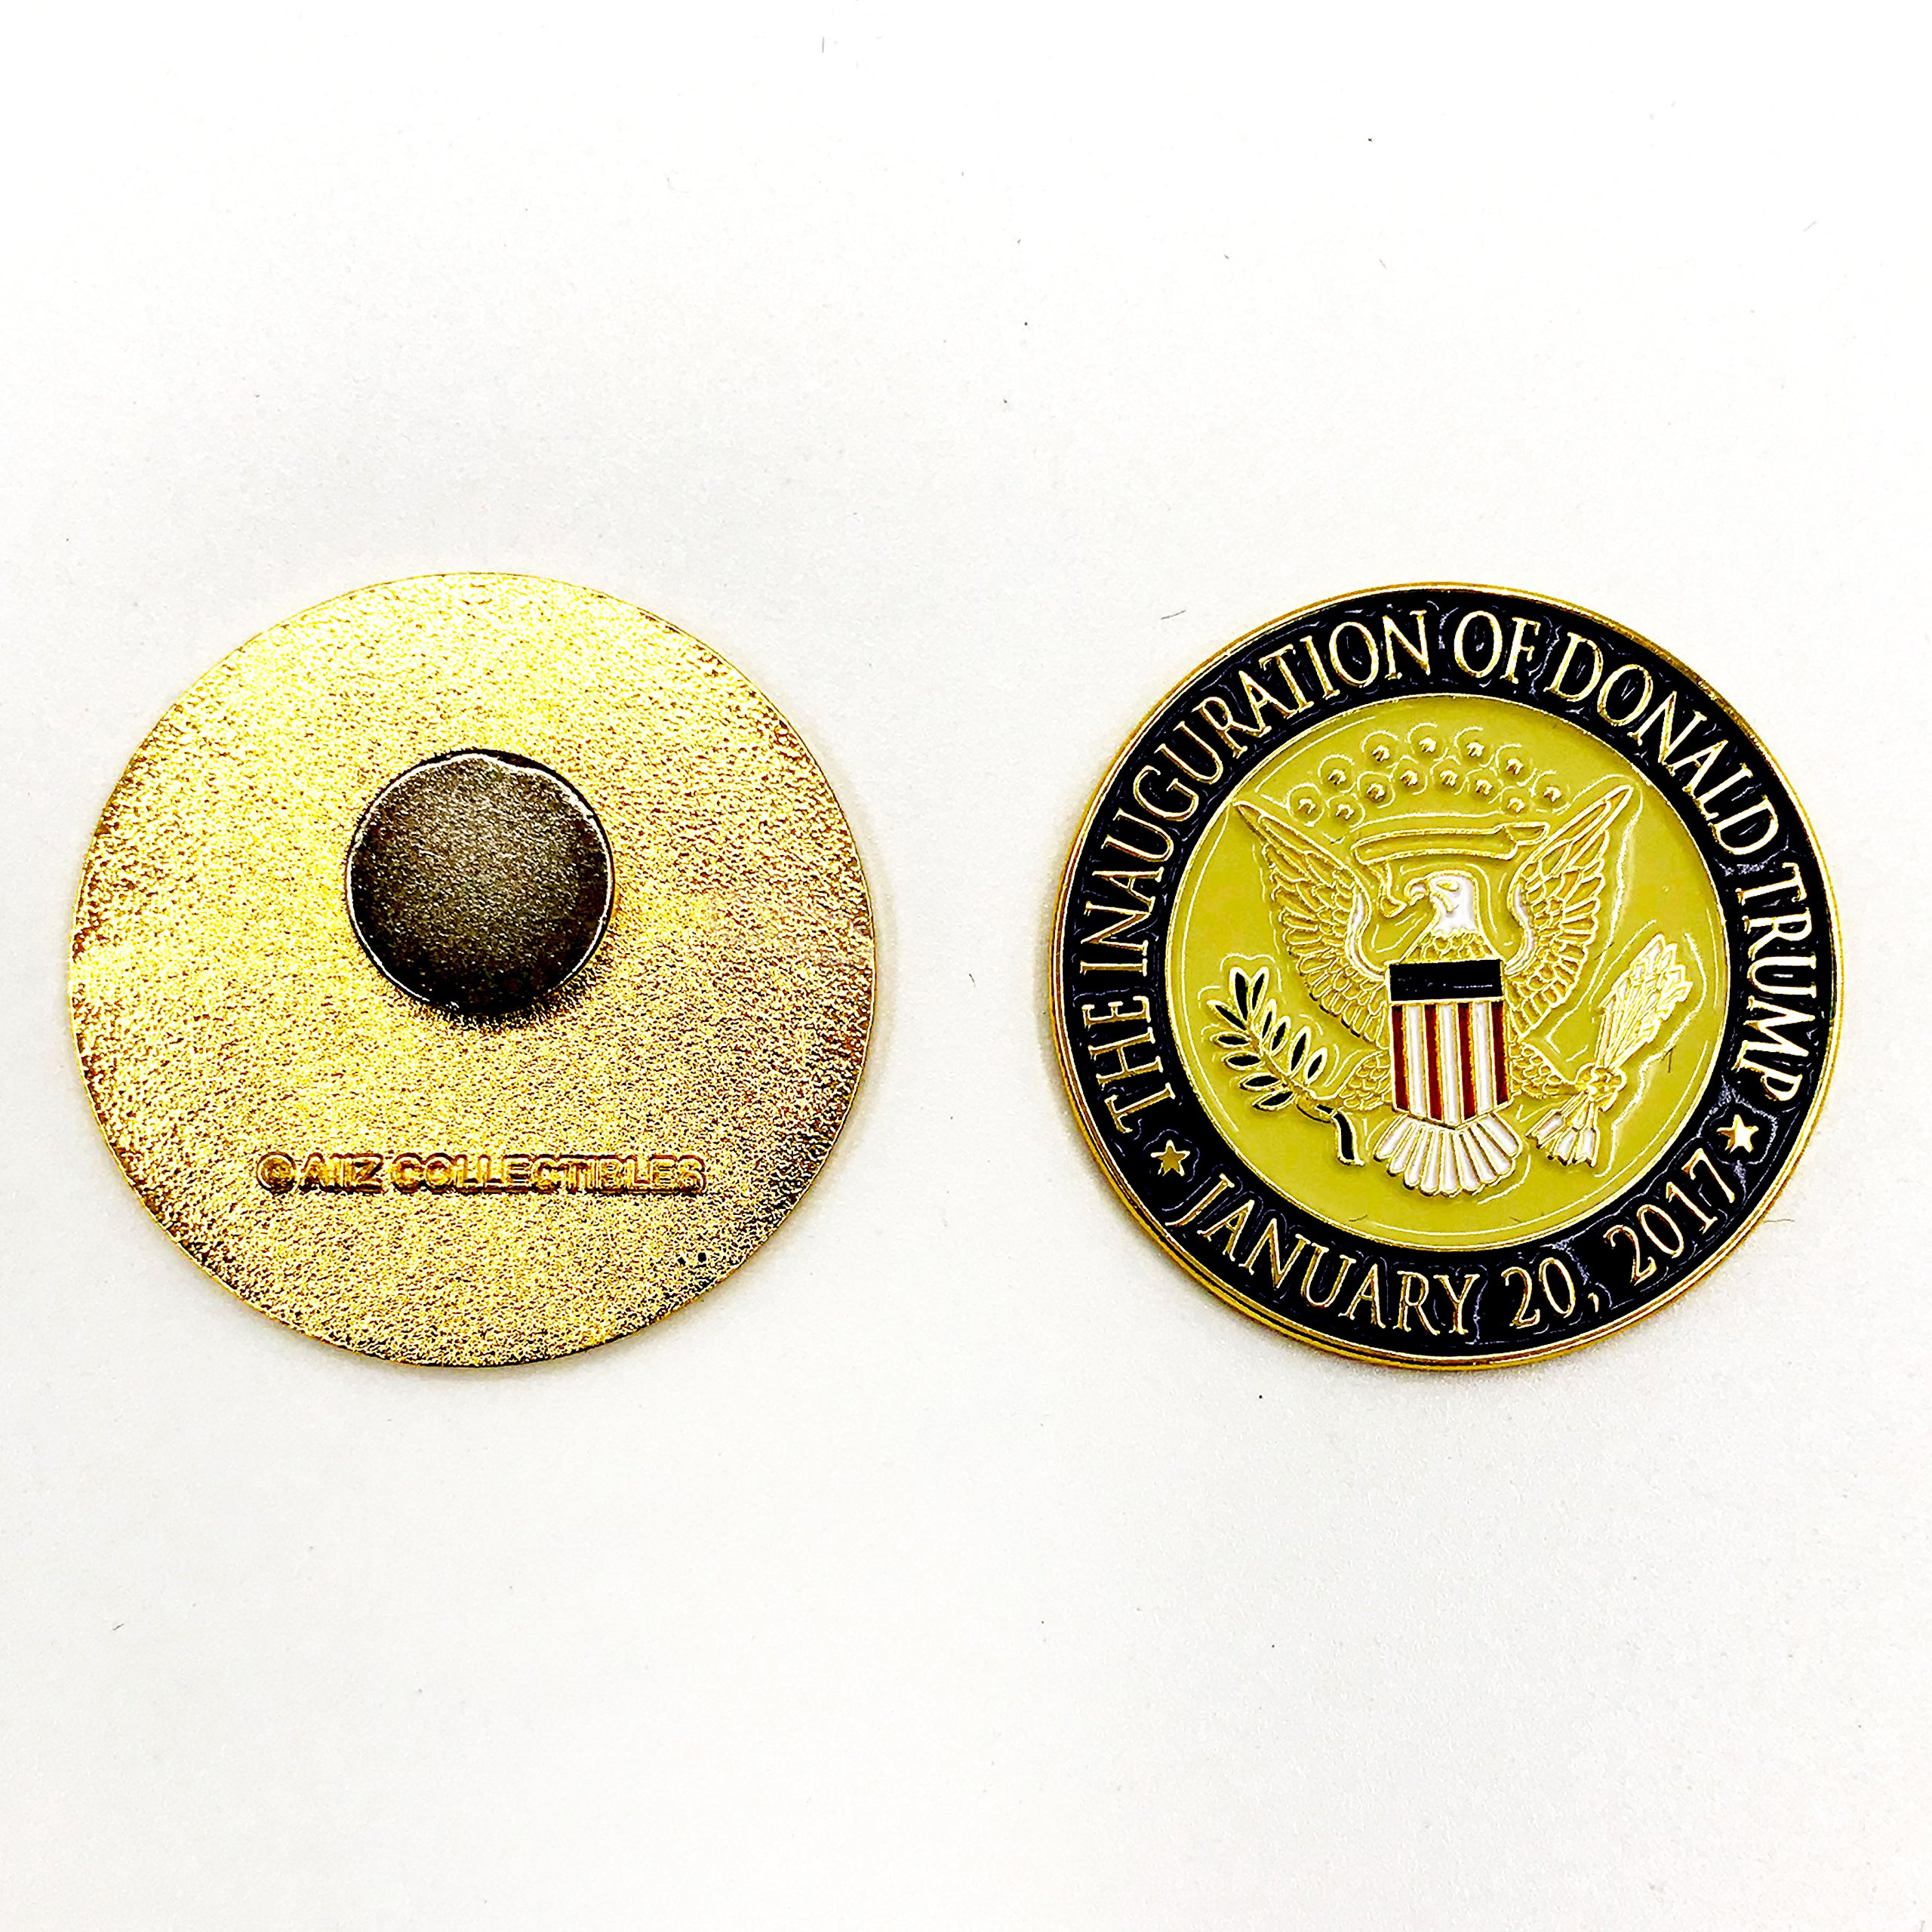 Trump Coin, 58th Presidential Inauguration of Donald J. Trump Challenge Coin by AIIZ Collectibles, 1.75'' Diameter in Shinny 24K Gold & 925 Silver Plating, packaged in Black Velvet Case by AIIZ Collectibles (Image #8)